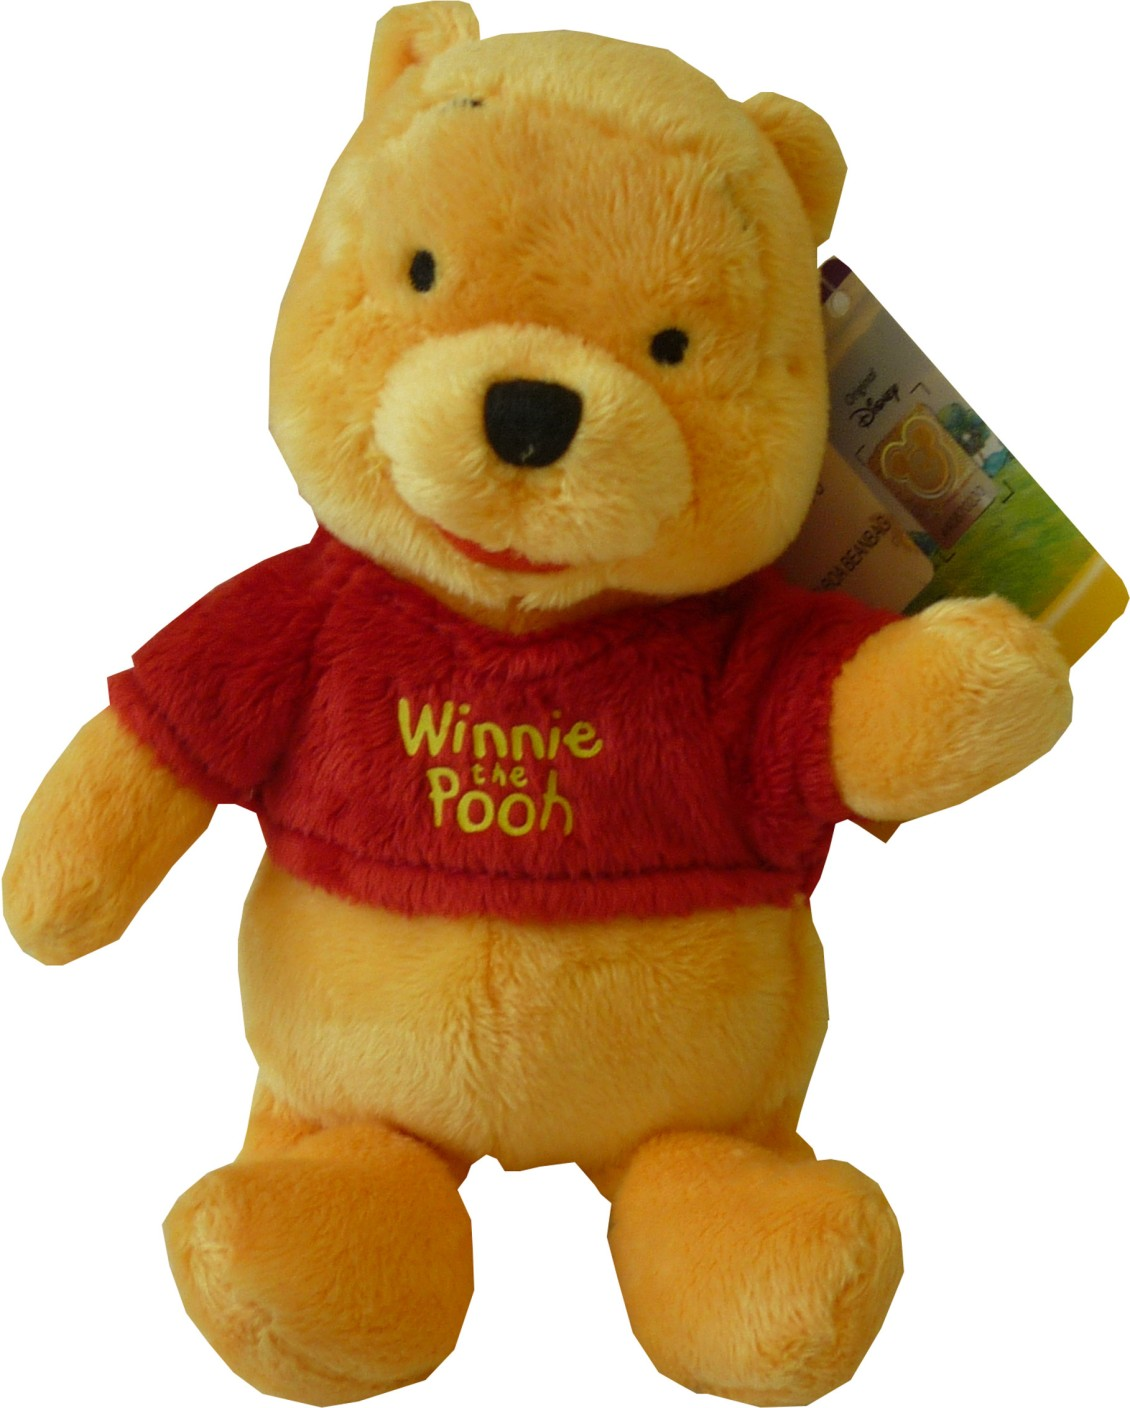 disney winnie the pooh floppy pooh 17 inch winnie the pooh floppy pooh buy winnie the pooh. Black Bedroom Furniture Sets. Home Design Ideas